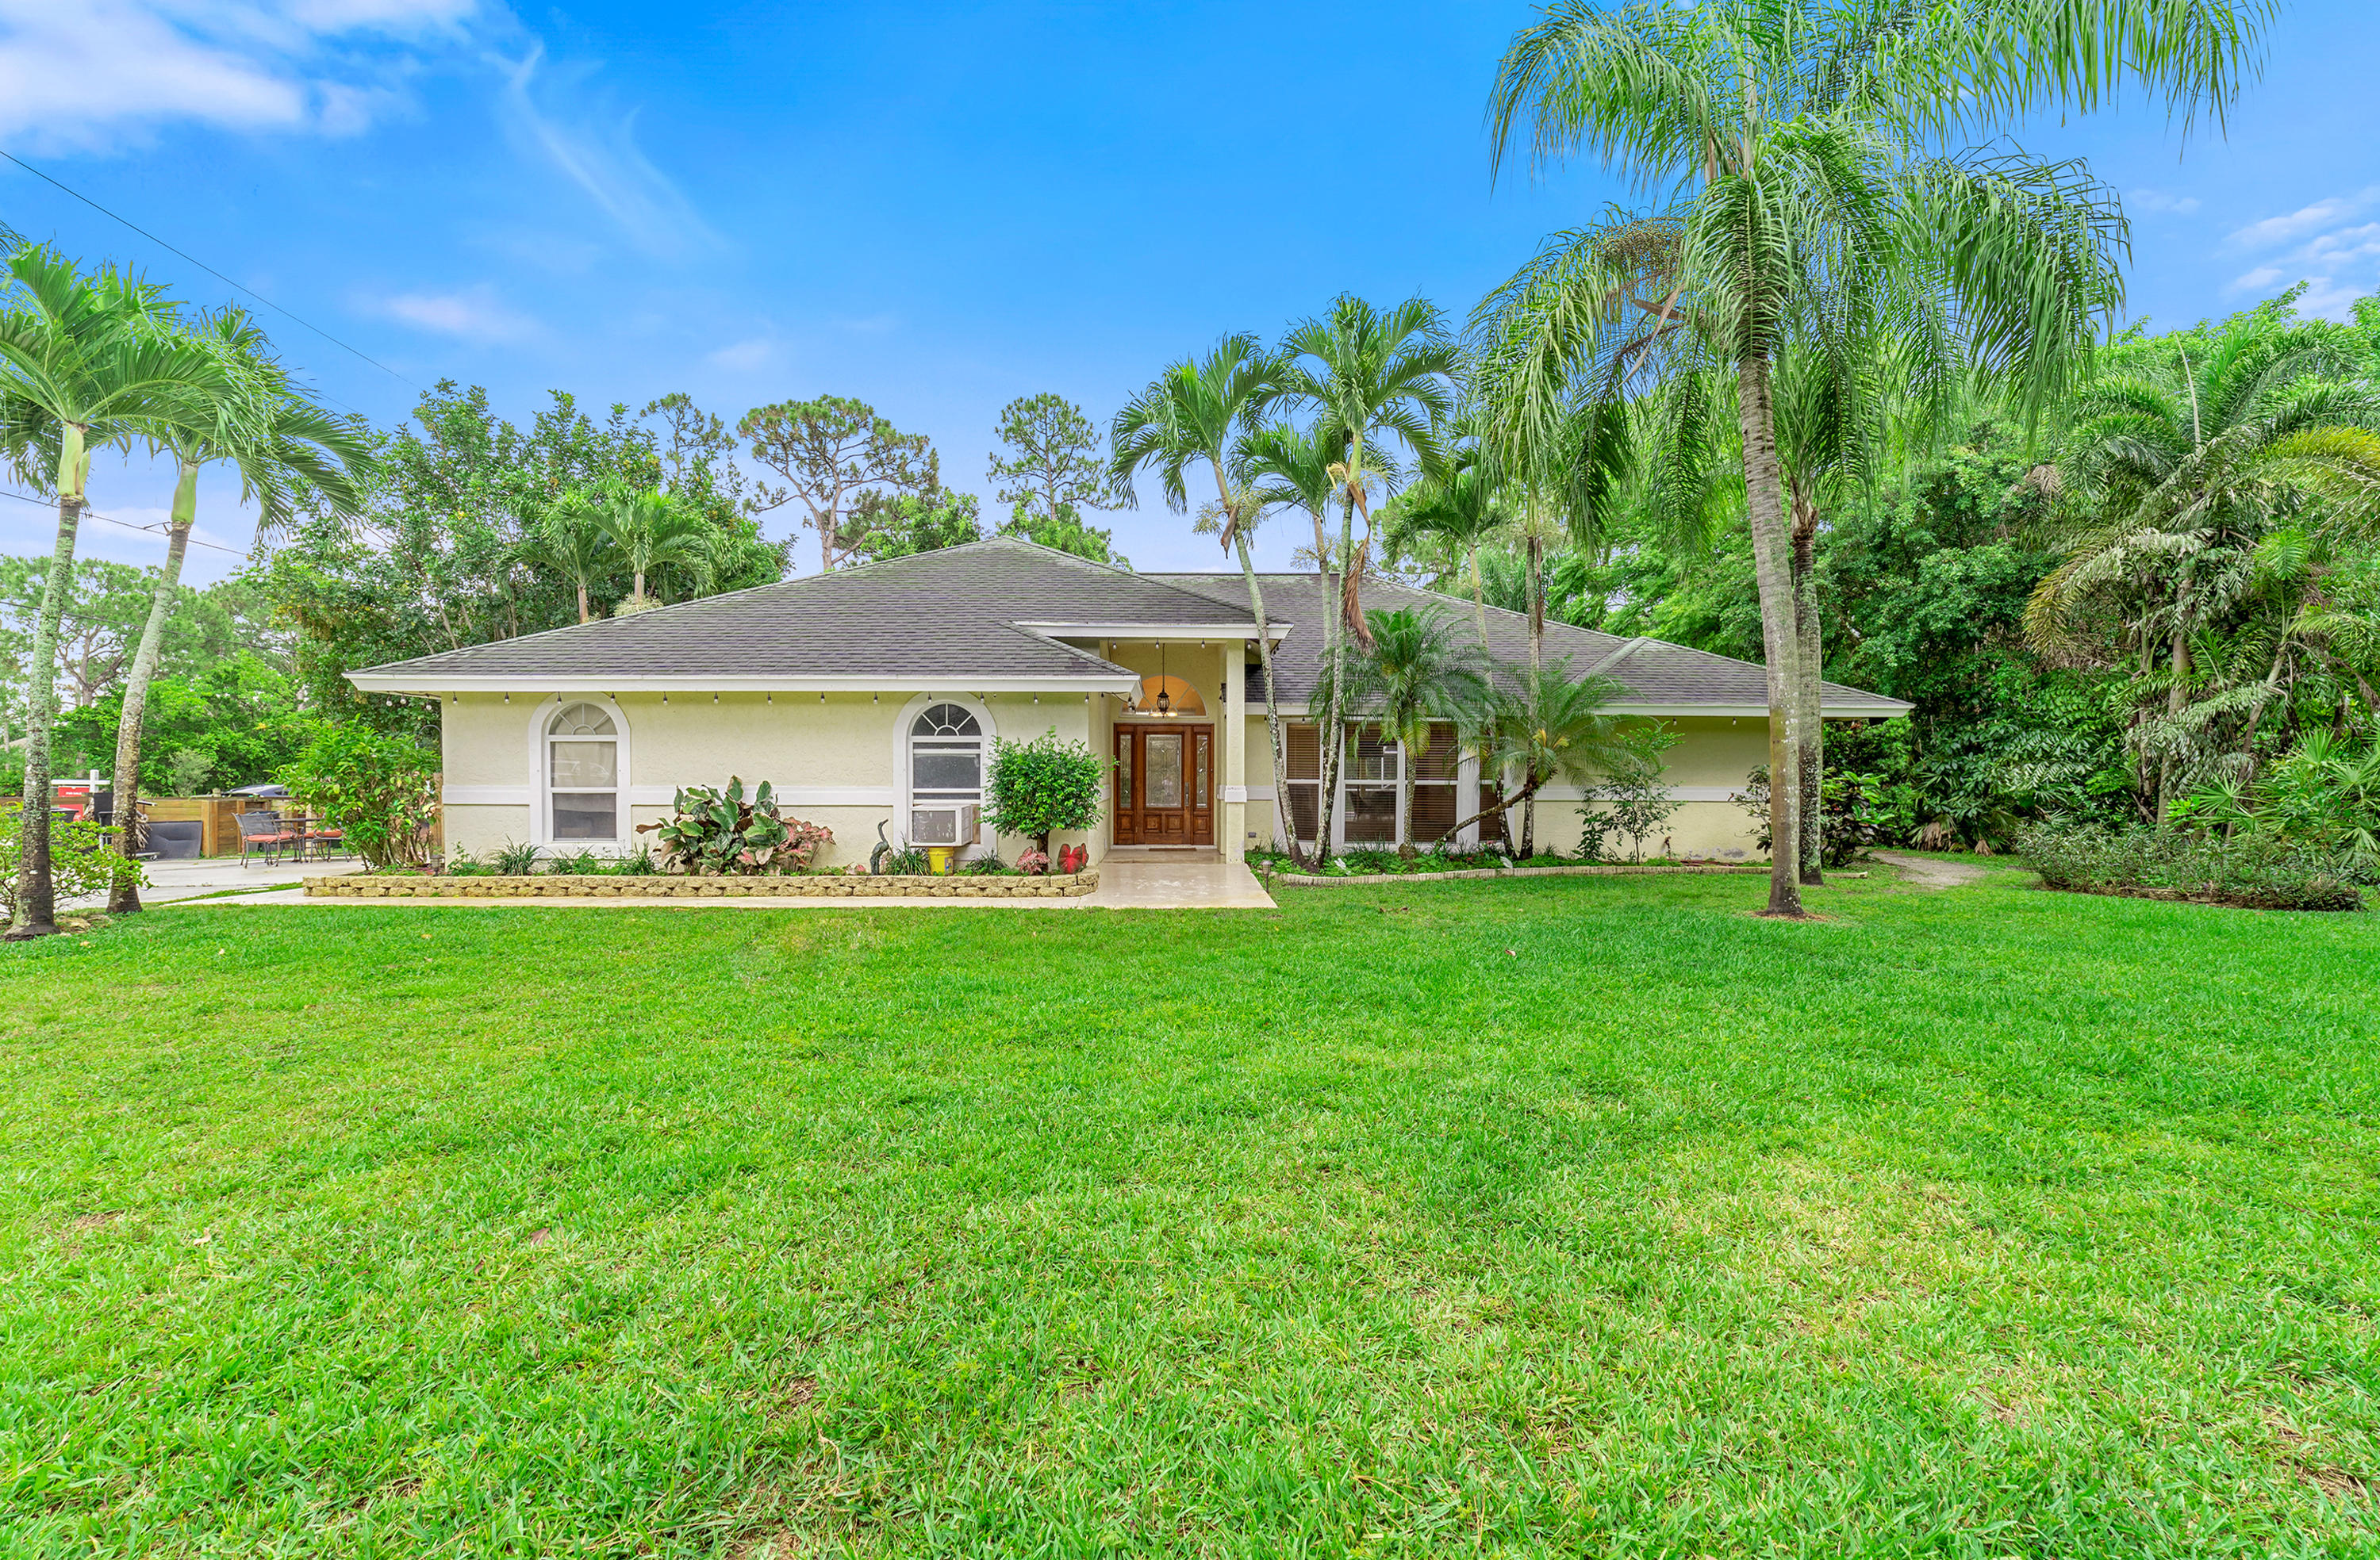 15451 129th Place, Jupiter, Florida 33478, 4 Bedrooms Bedrooms, ,3 BathroomsBathrooms,Single Family,For Sale,129th,RX-10530164